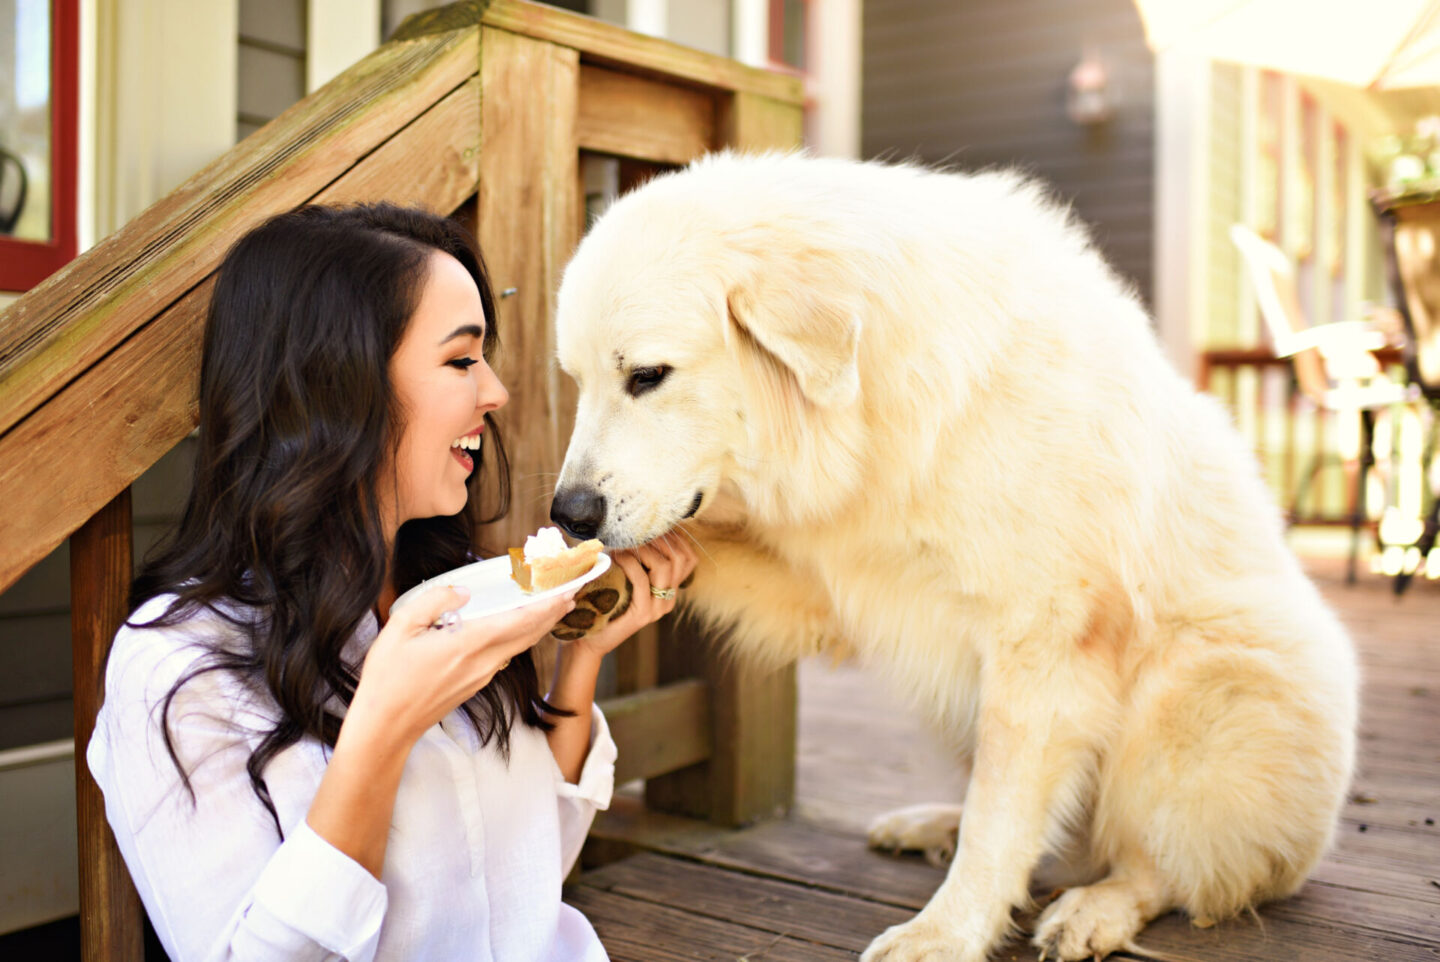 Holiday Gift Guide: Top 10 Gifts for the Dog Lover